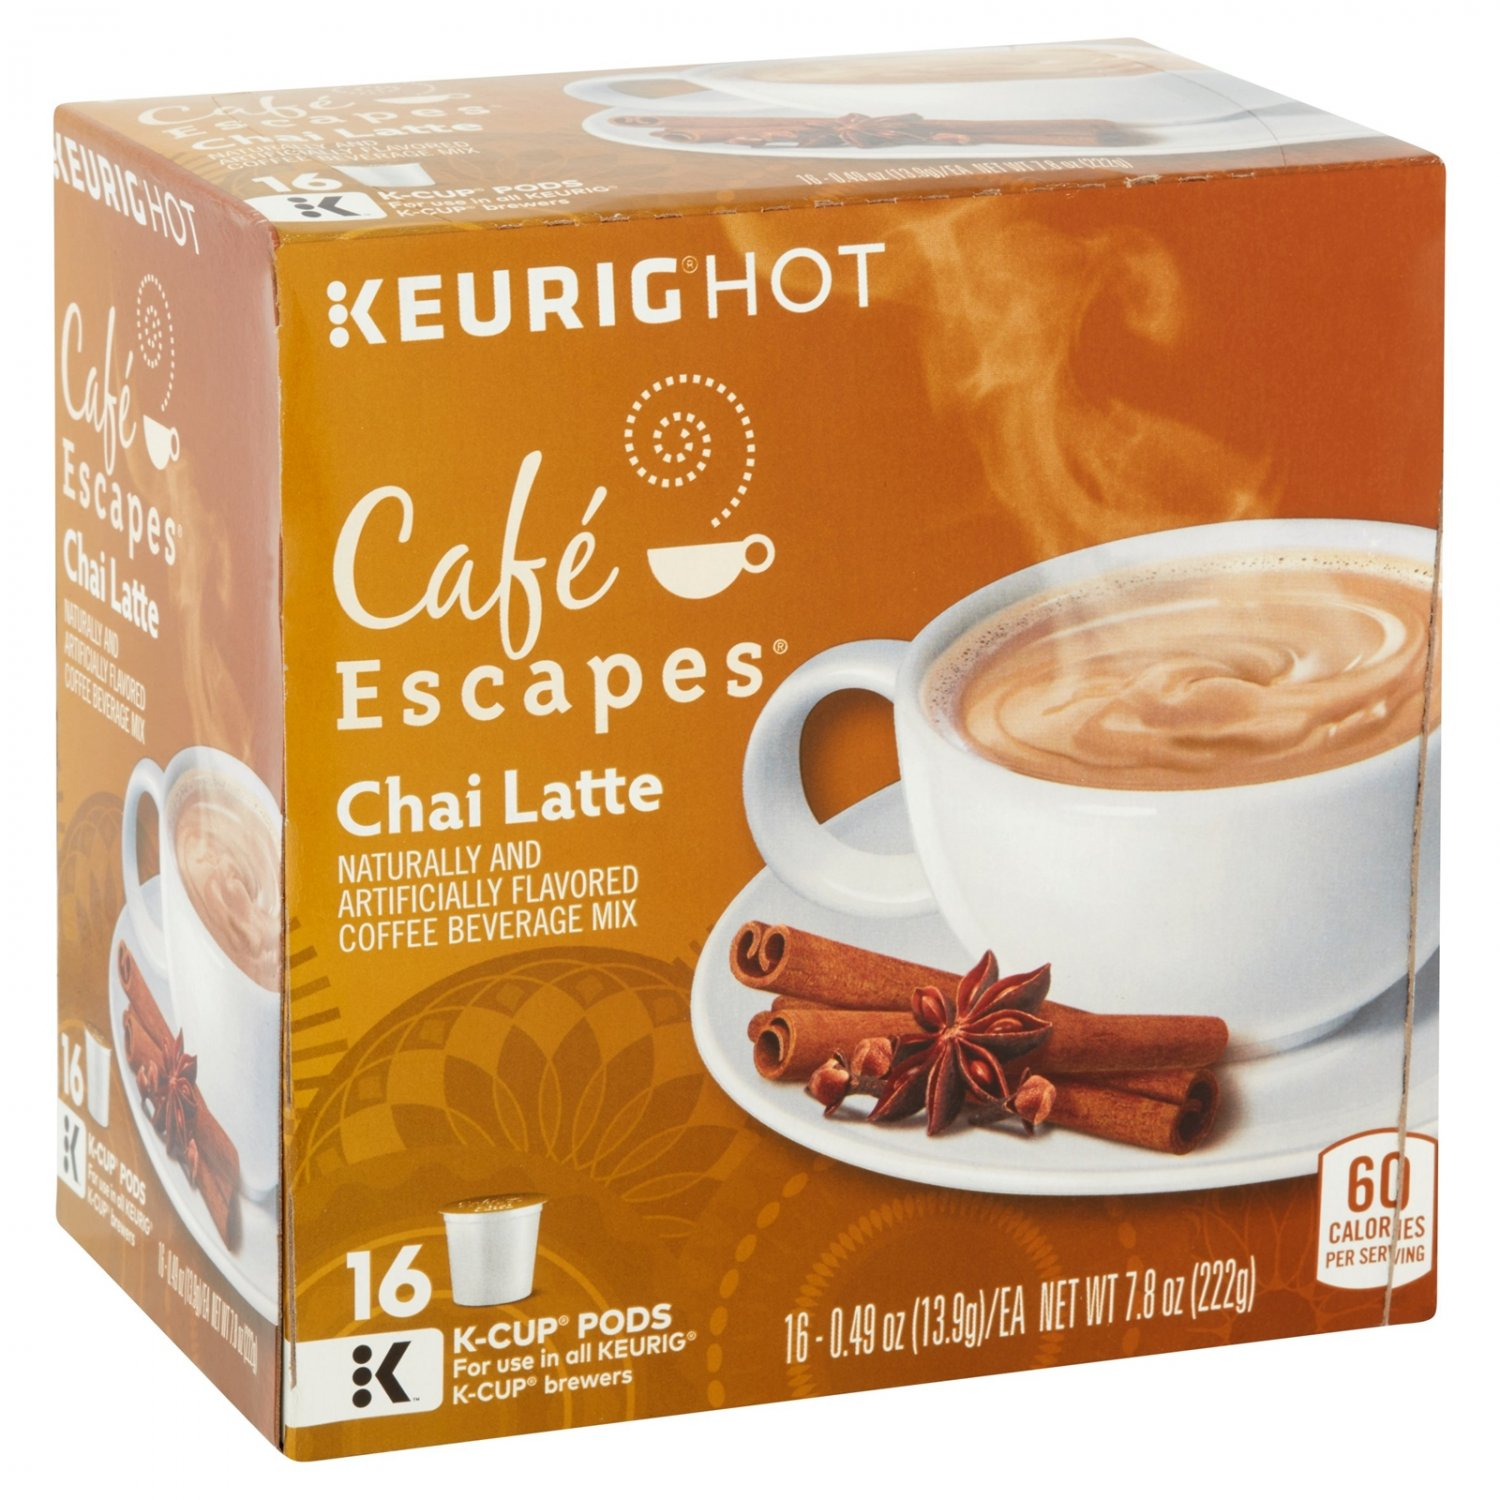 Keurig Cafe Escape Chai Latte K-Cups 16pc cappuccino black tea hot drinks coffee